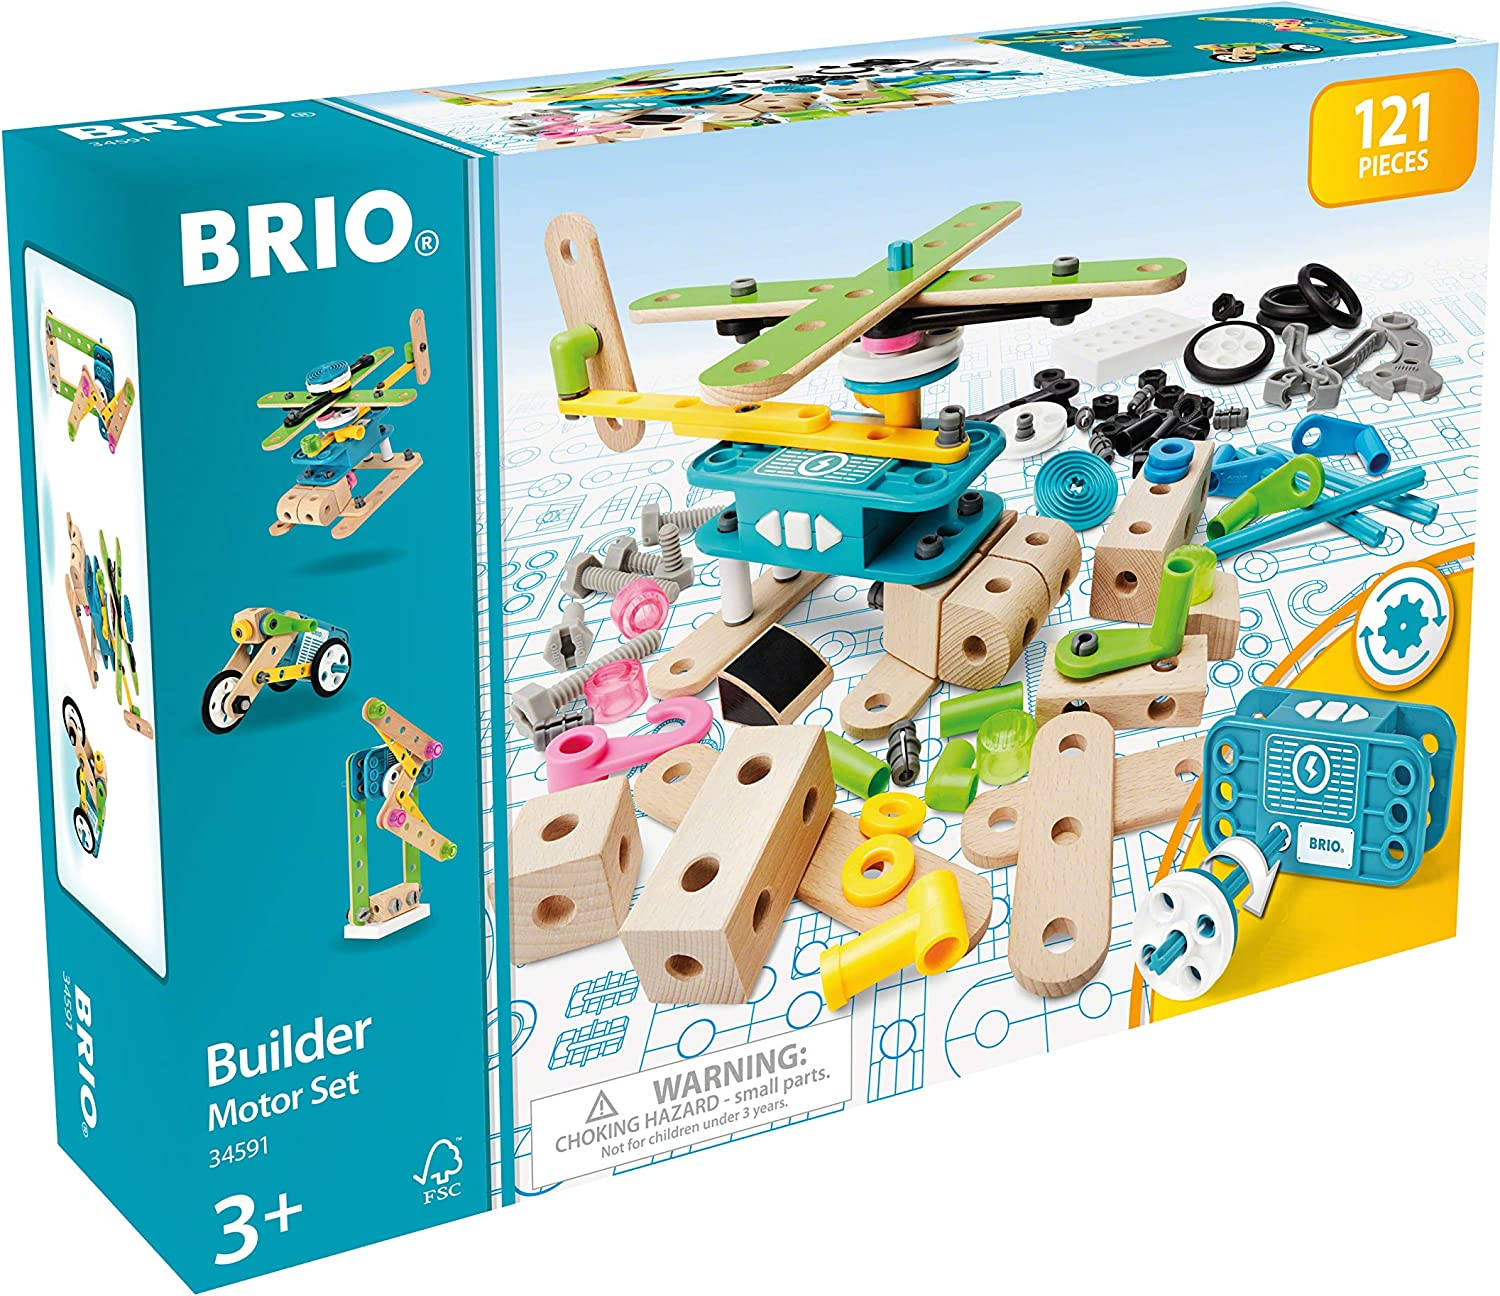 BRIO Builder 34591 - Builder Motor Set - 120 Piece Construction Set STEM Toy with Wood and Plastic Pieces and a Motor for Kids Age 3 and Up